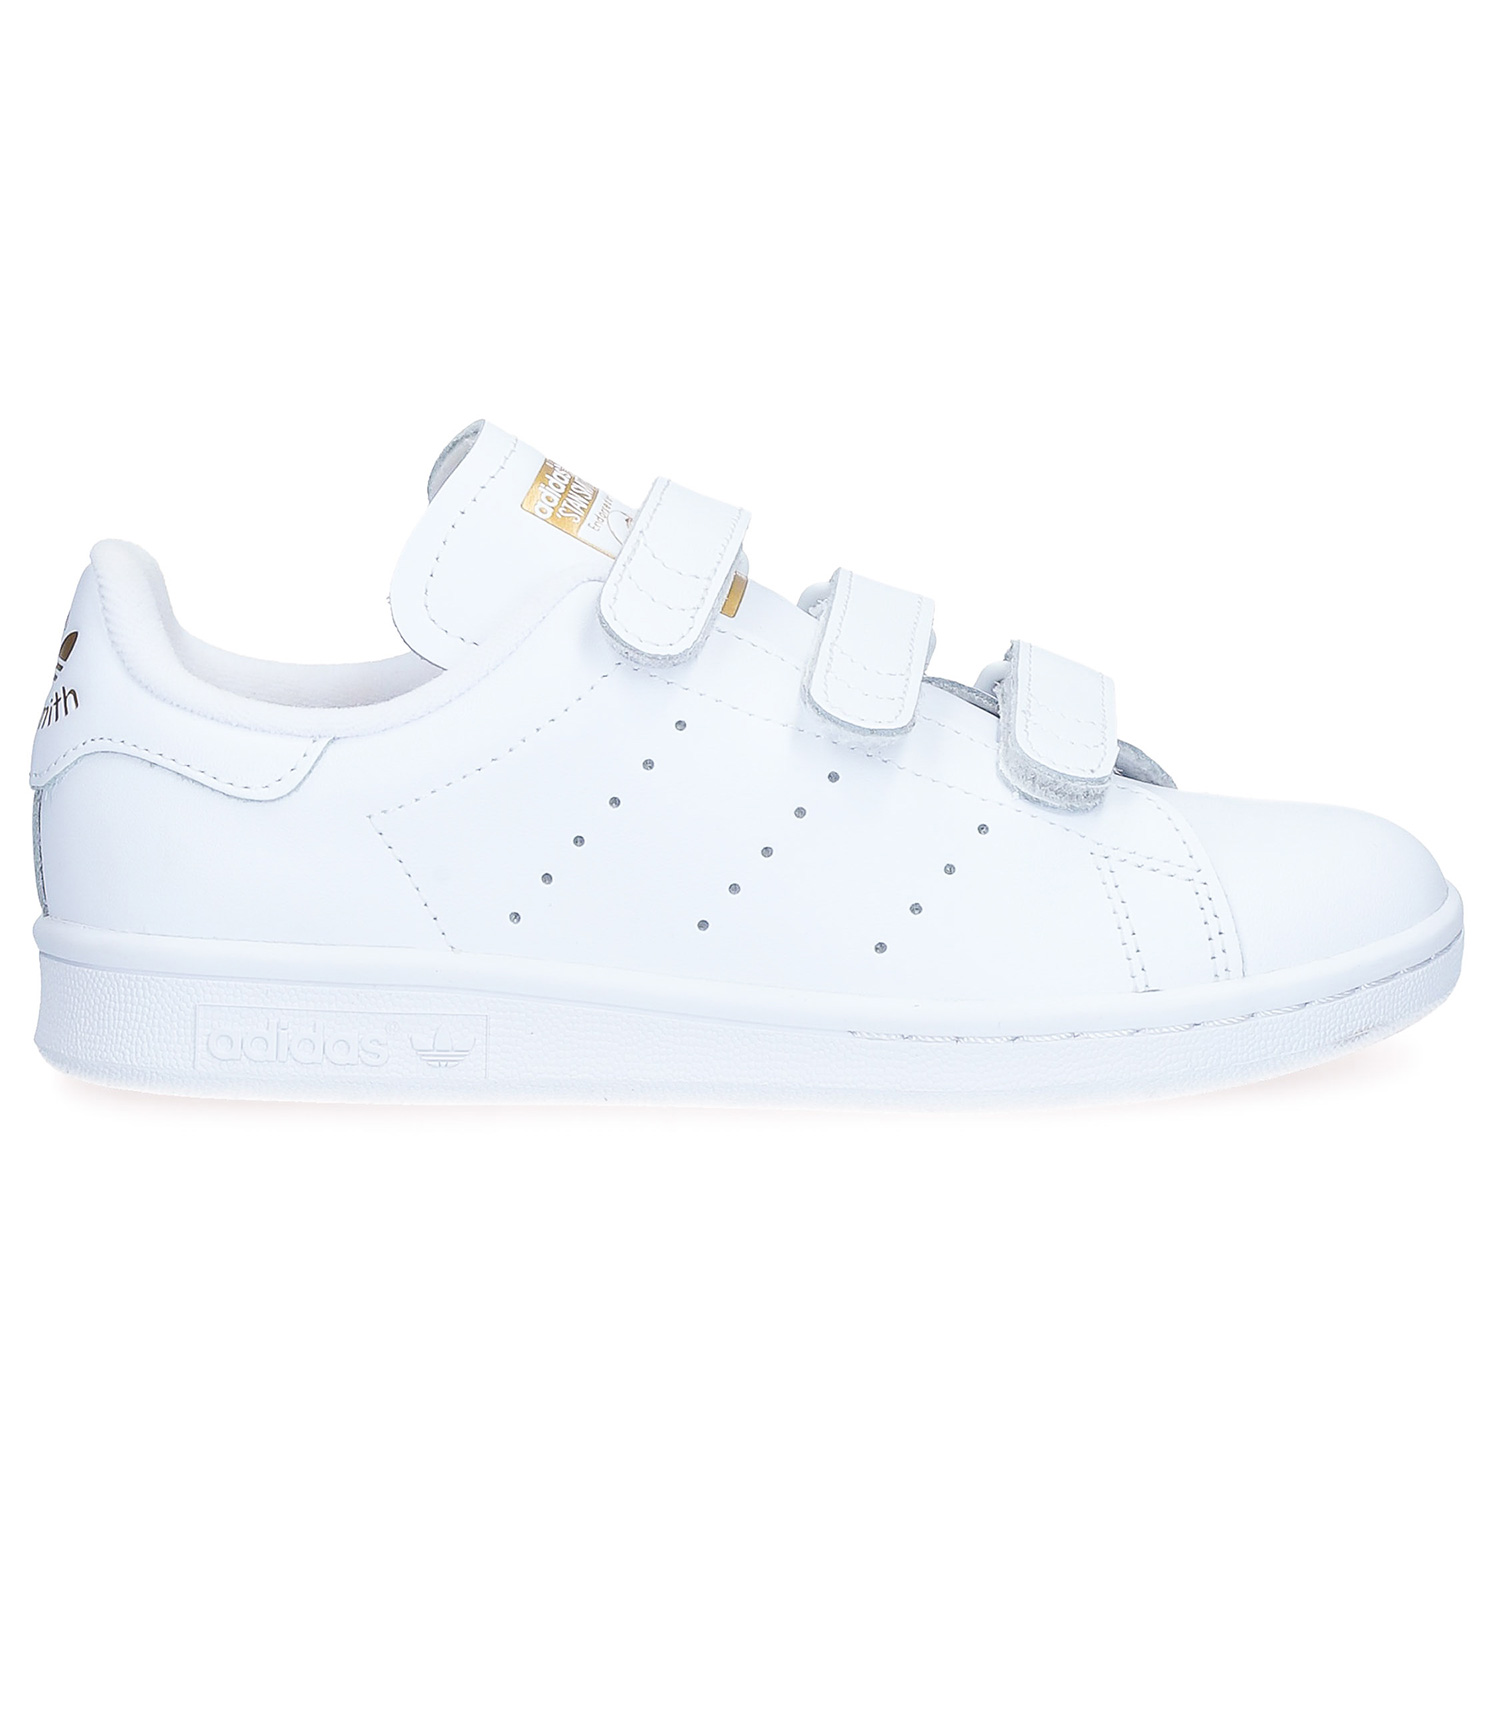 Adidas STAN SMITH : Les Baskets blanches Incontournables